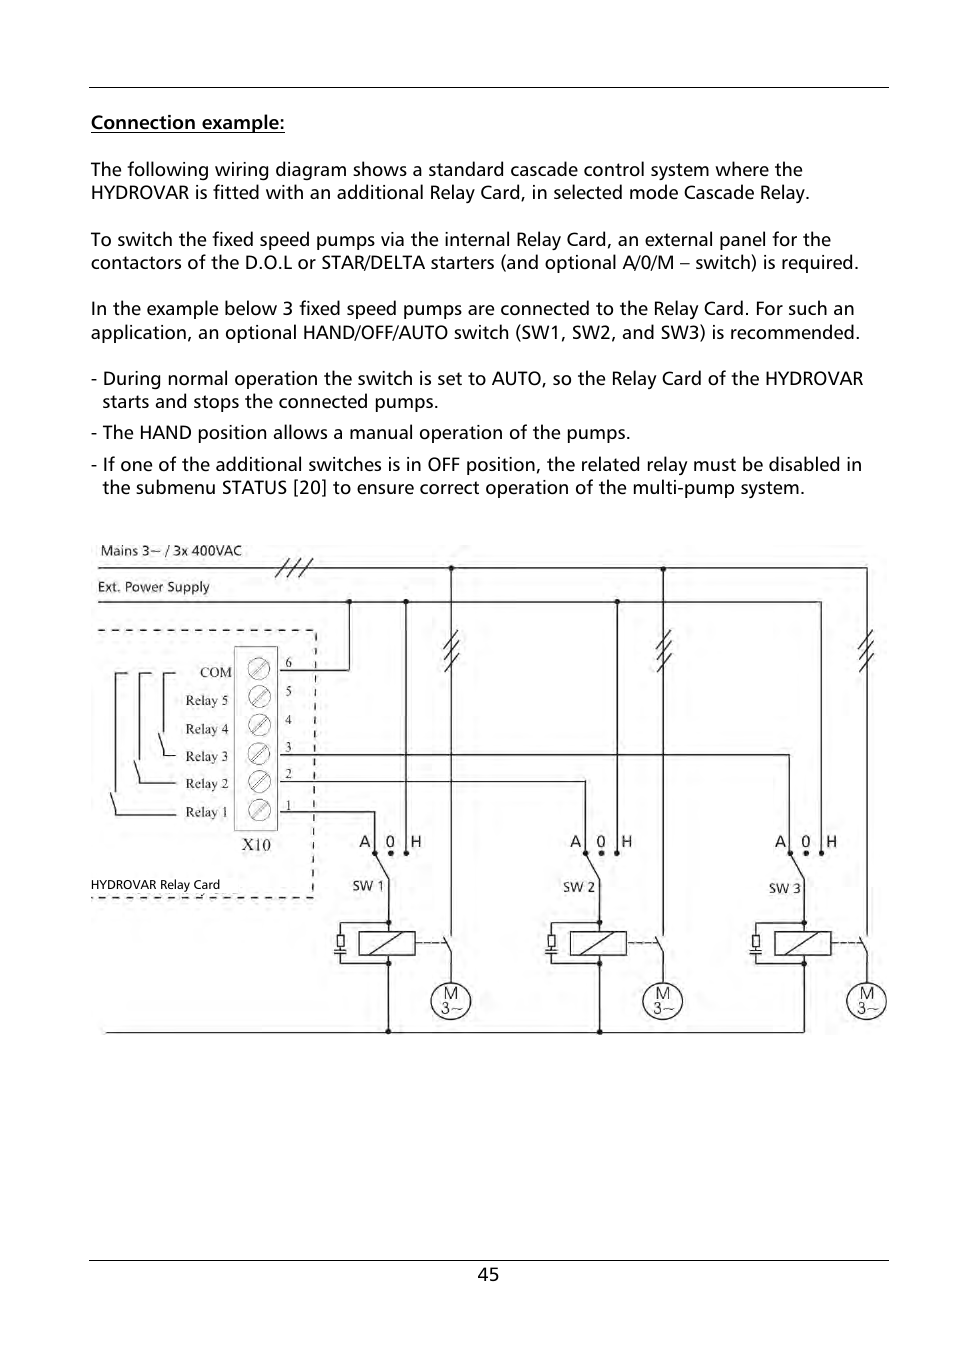 Hand Off Auto Switch Pump Wiring Diagram Car Electric Fan Xylem Hydrovar Hv 4150 4185 4220 User Manual Page 45 104 On